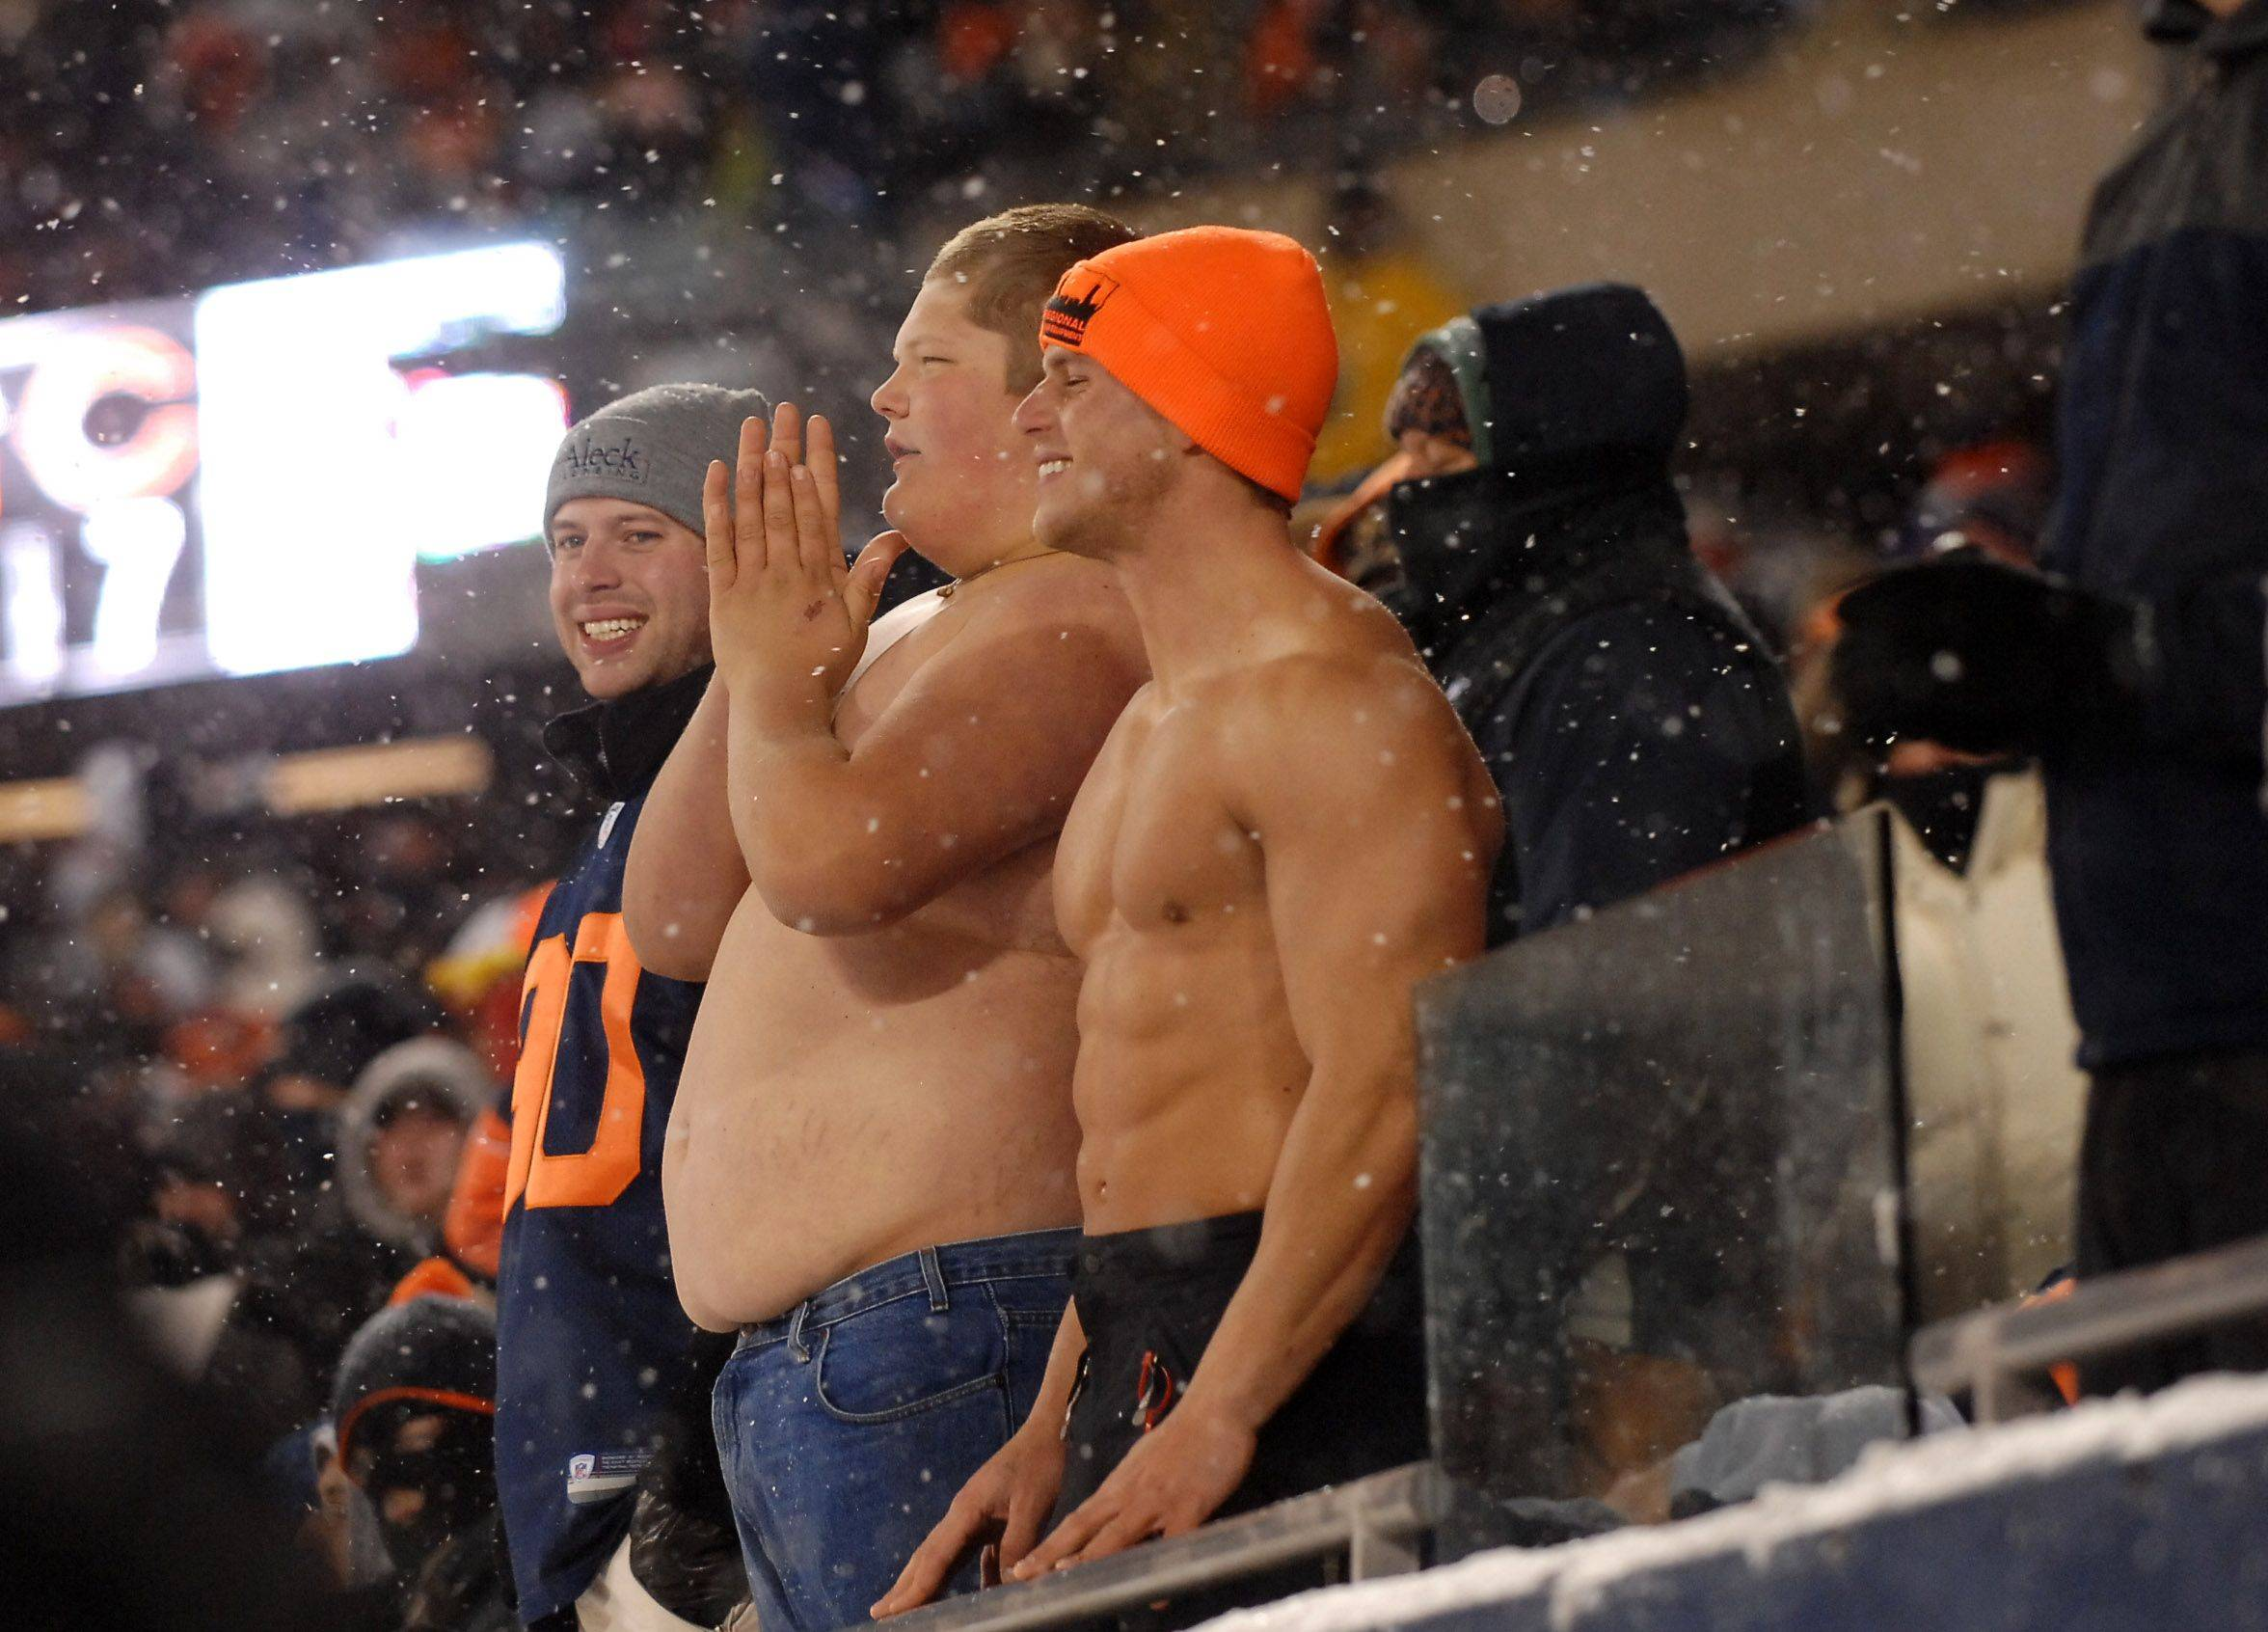 Fans enjoy the action during Sunday's NFL football game between the Chicago Bears and the New England Patriots at Soldier Field.